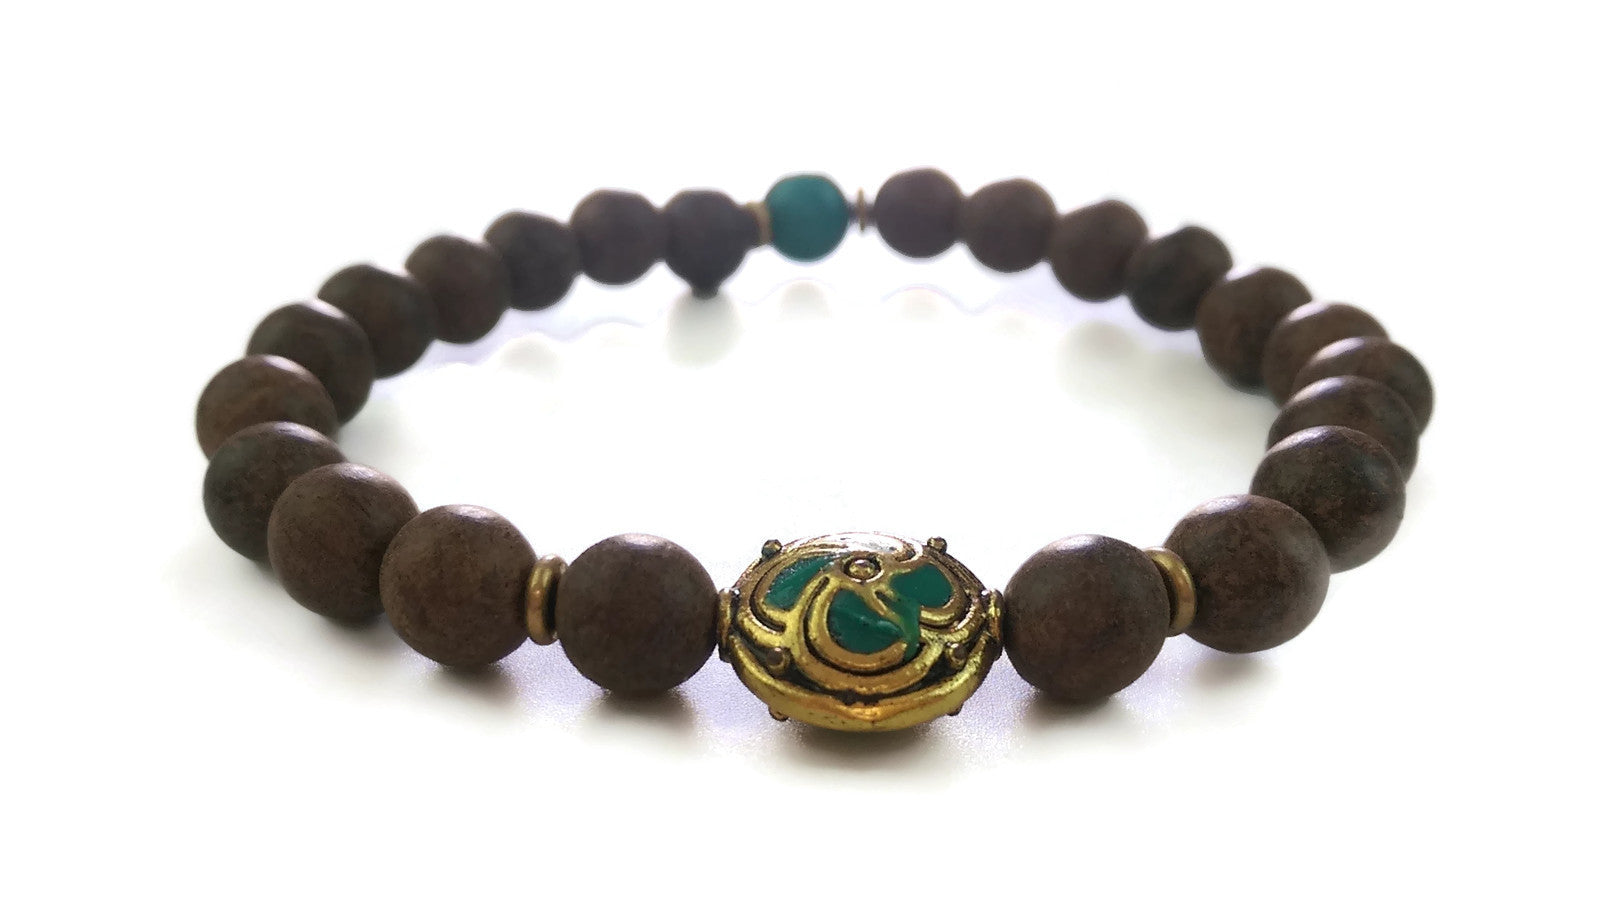 Nepal Chakra Collection 8mm Brown Agarwood Nepal Bead Turquoise Wrist Mala Stretch Bracelet Throat Chakra